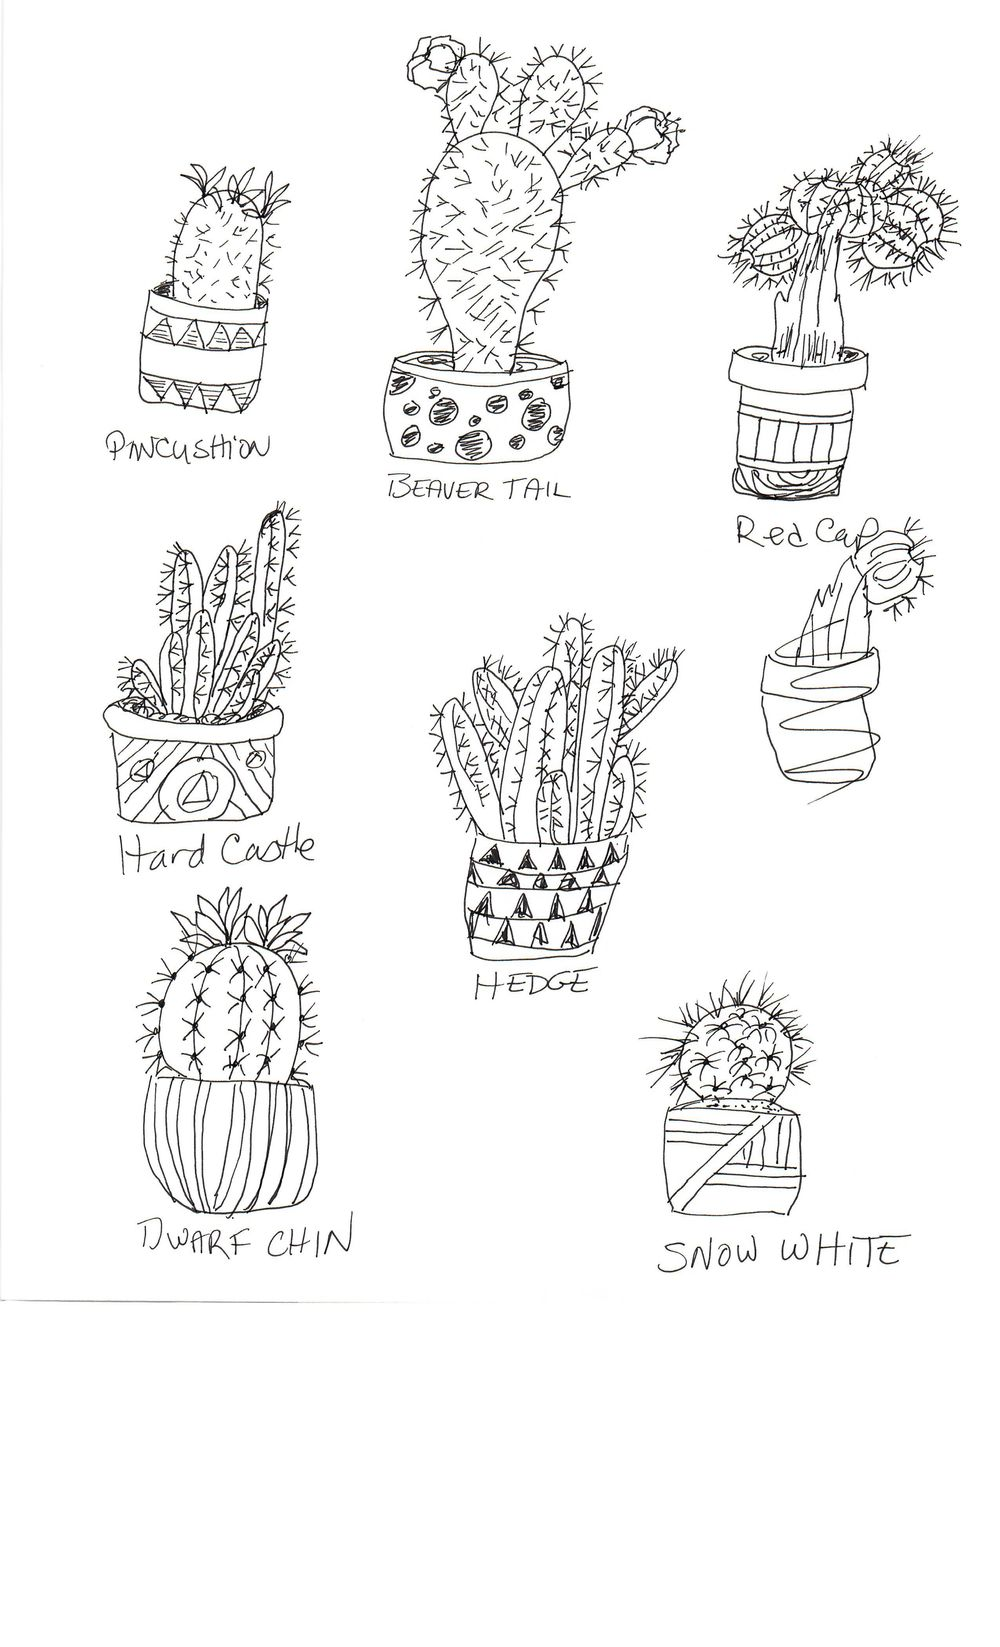 Practice Practice Practice Cactus cactus cactus. - image 1 - student project